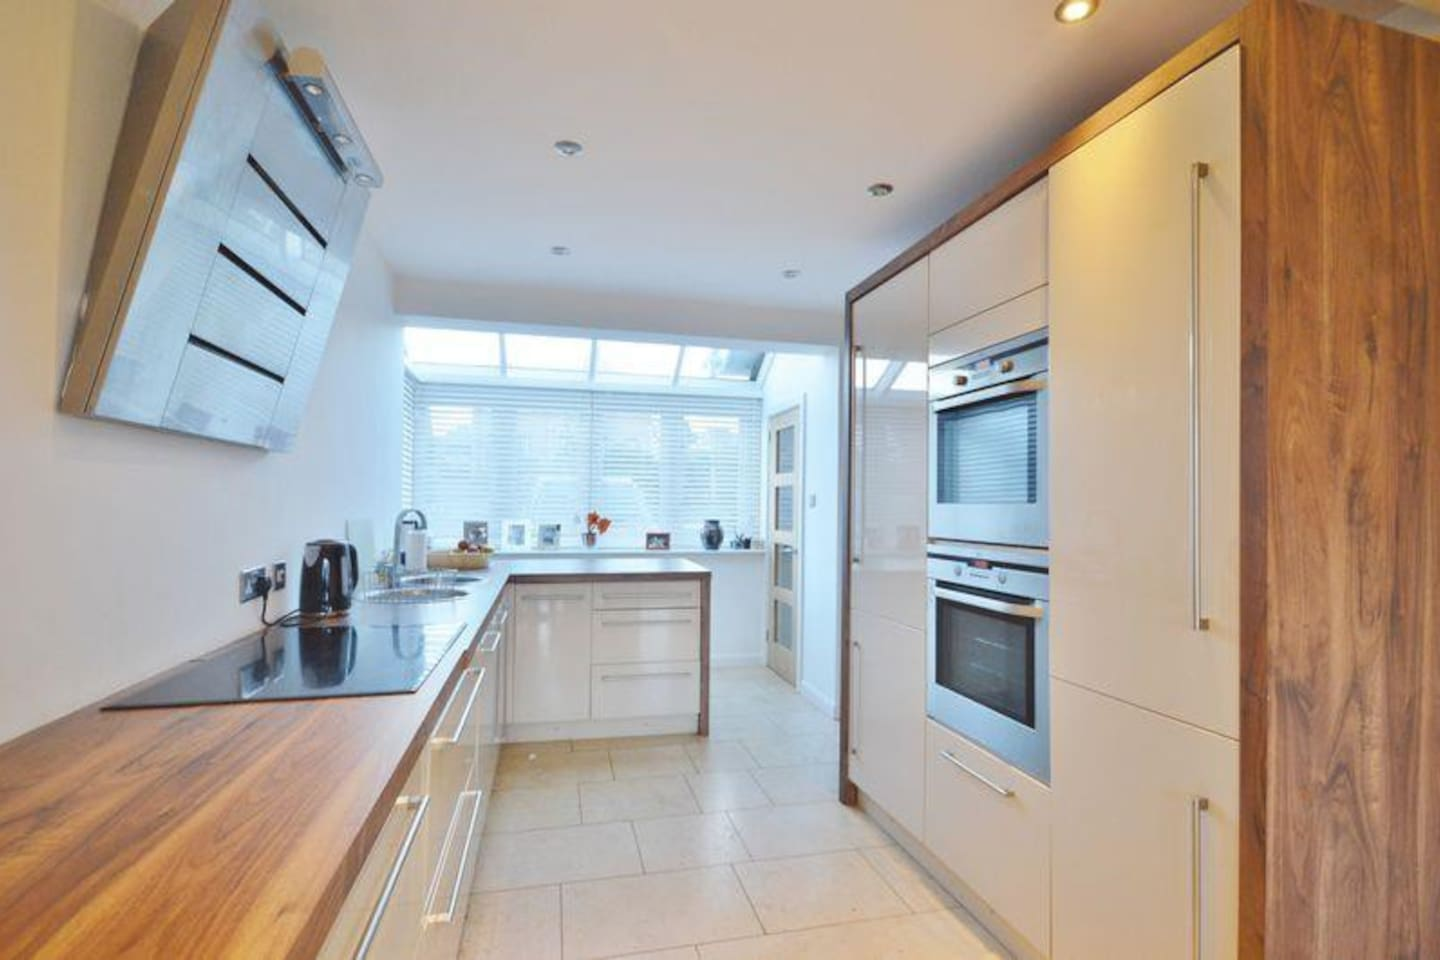 B&B with beautiful views - Houses for Rent in Cottingham, United Kingdom